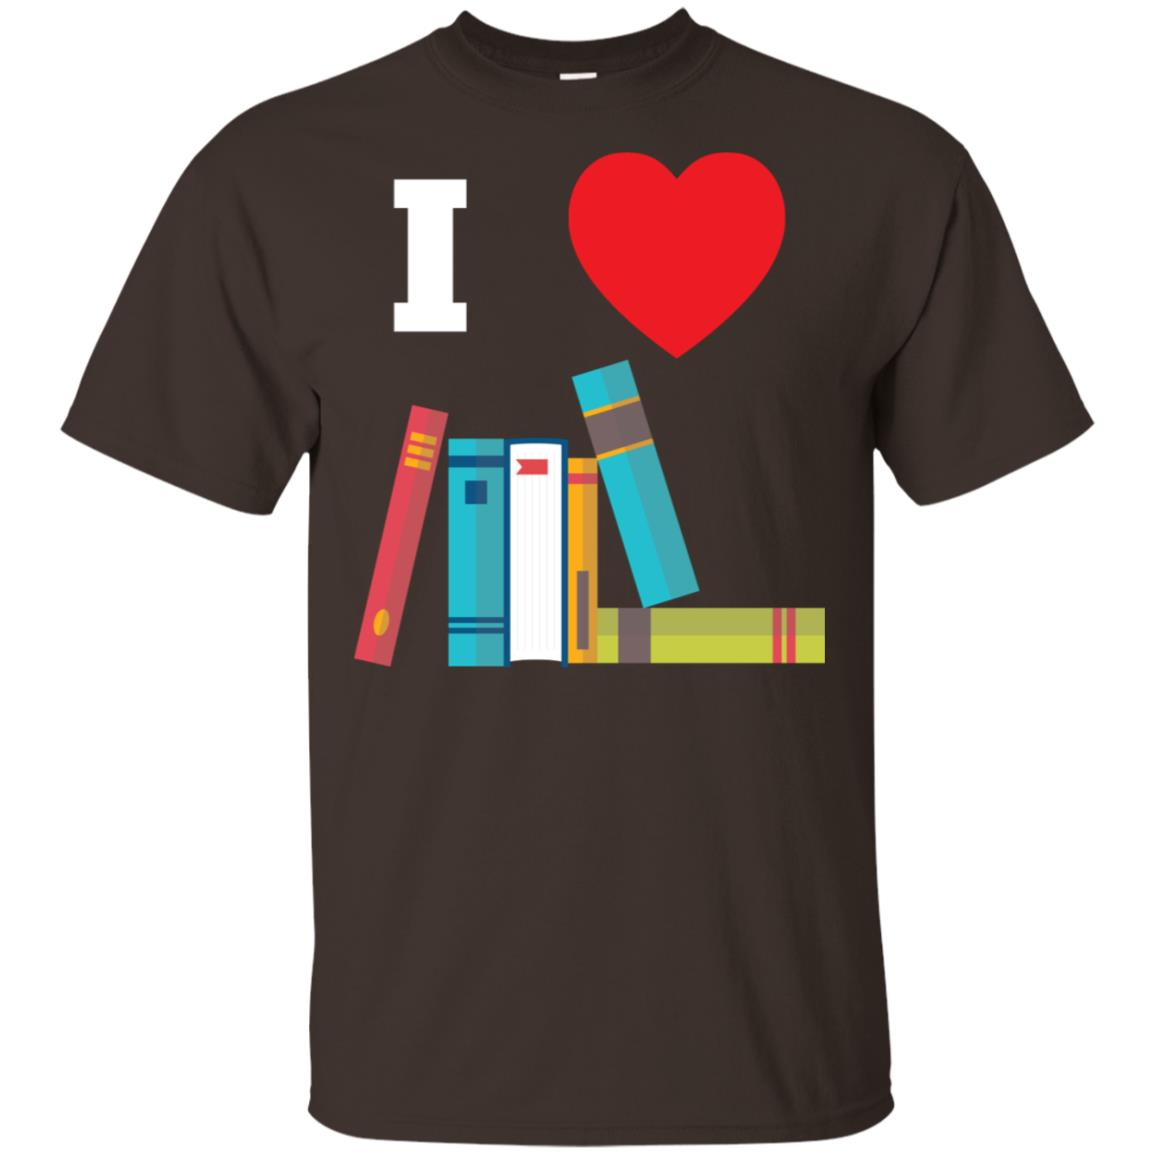 I Love Books Gift For Readers, Writers, Librarians Unisex Short Sleeve